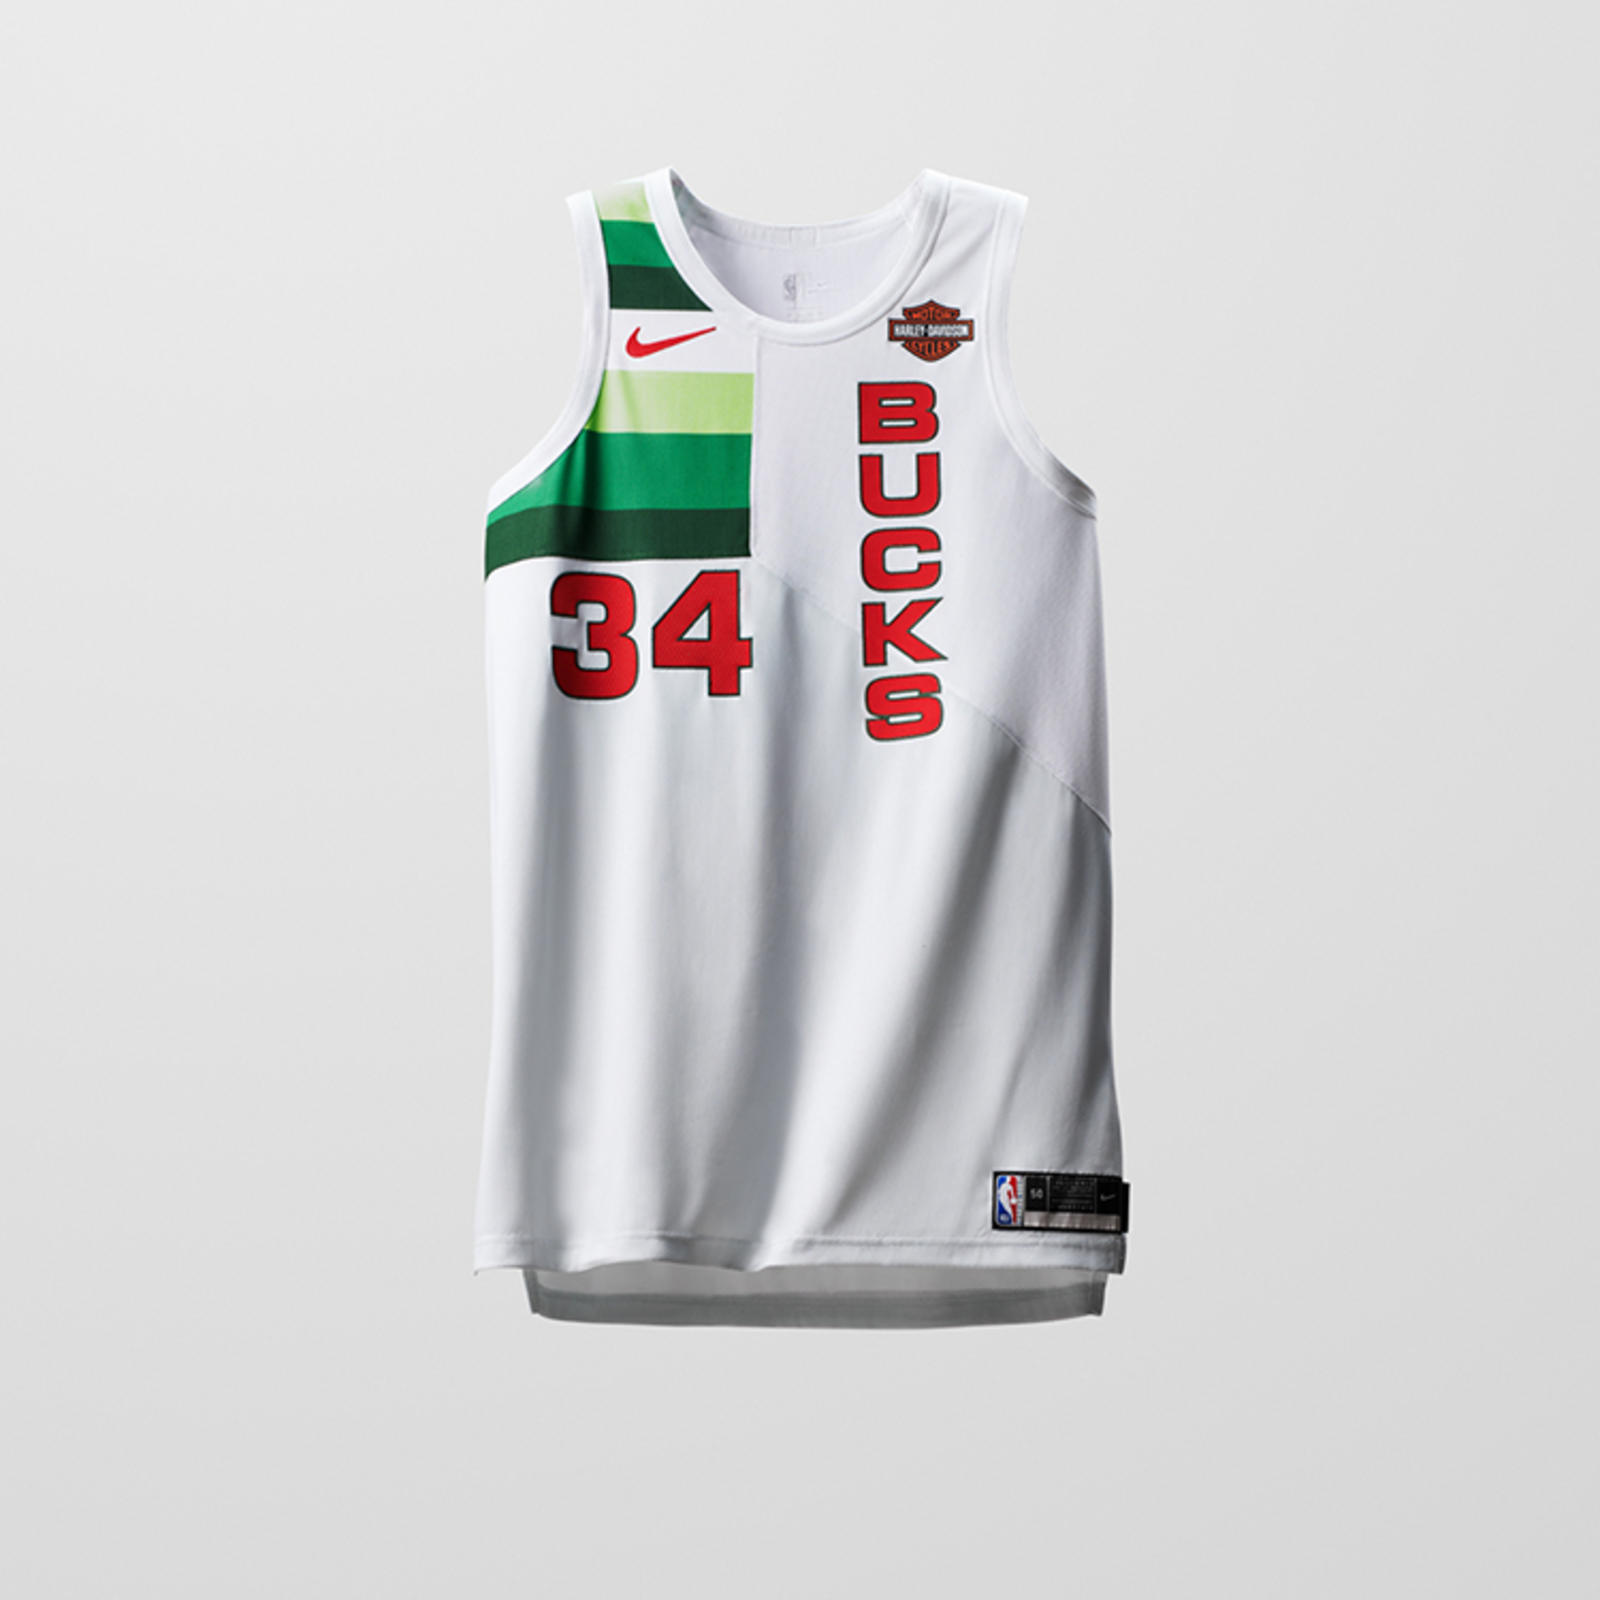 356529c310b1 Introducing the Nike x NBA EARNED Edition Uniforms 15